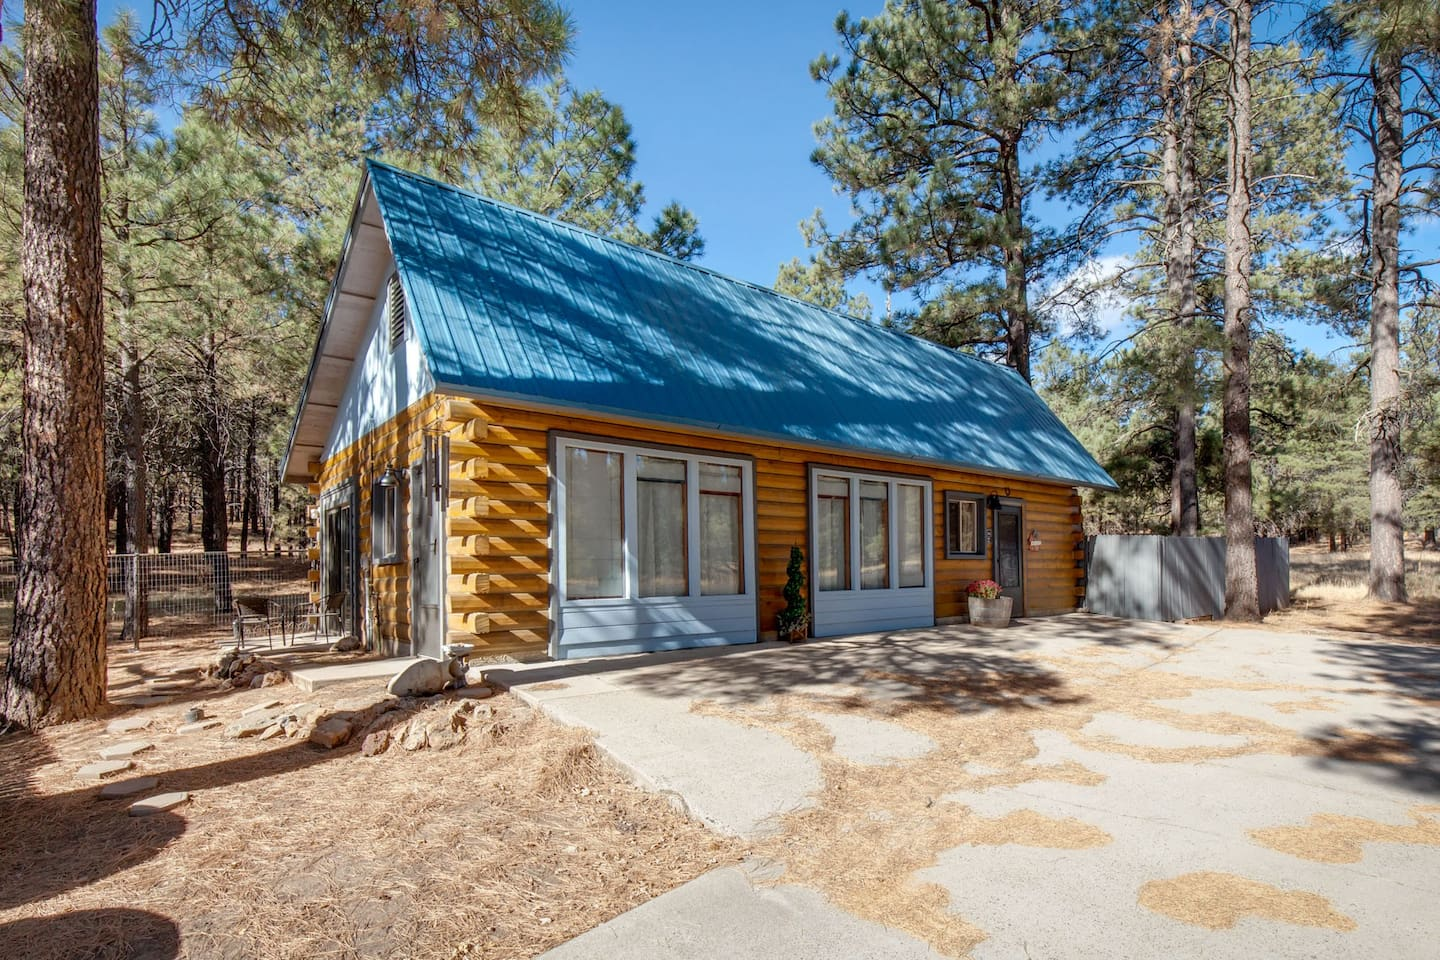 in estimate and p rent az for cabins rd flagstaff forest home service